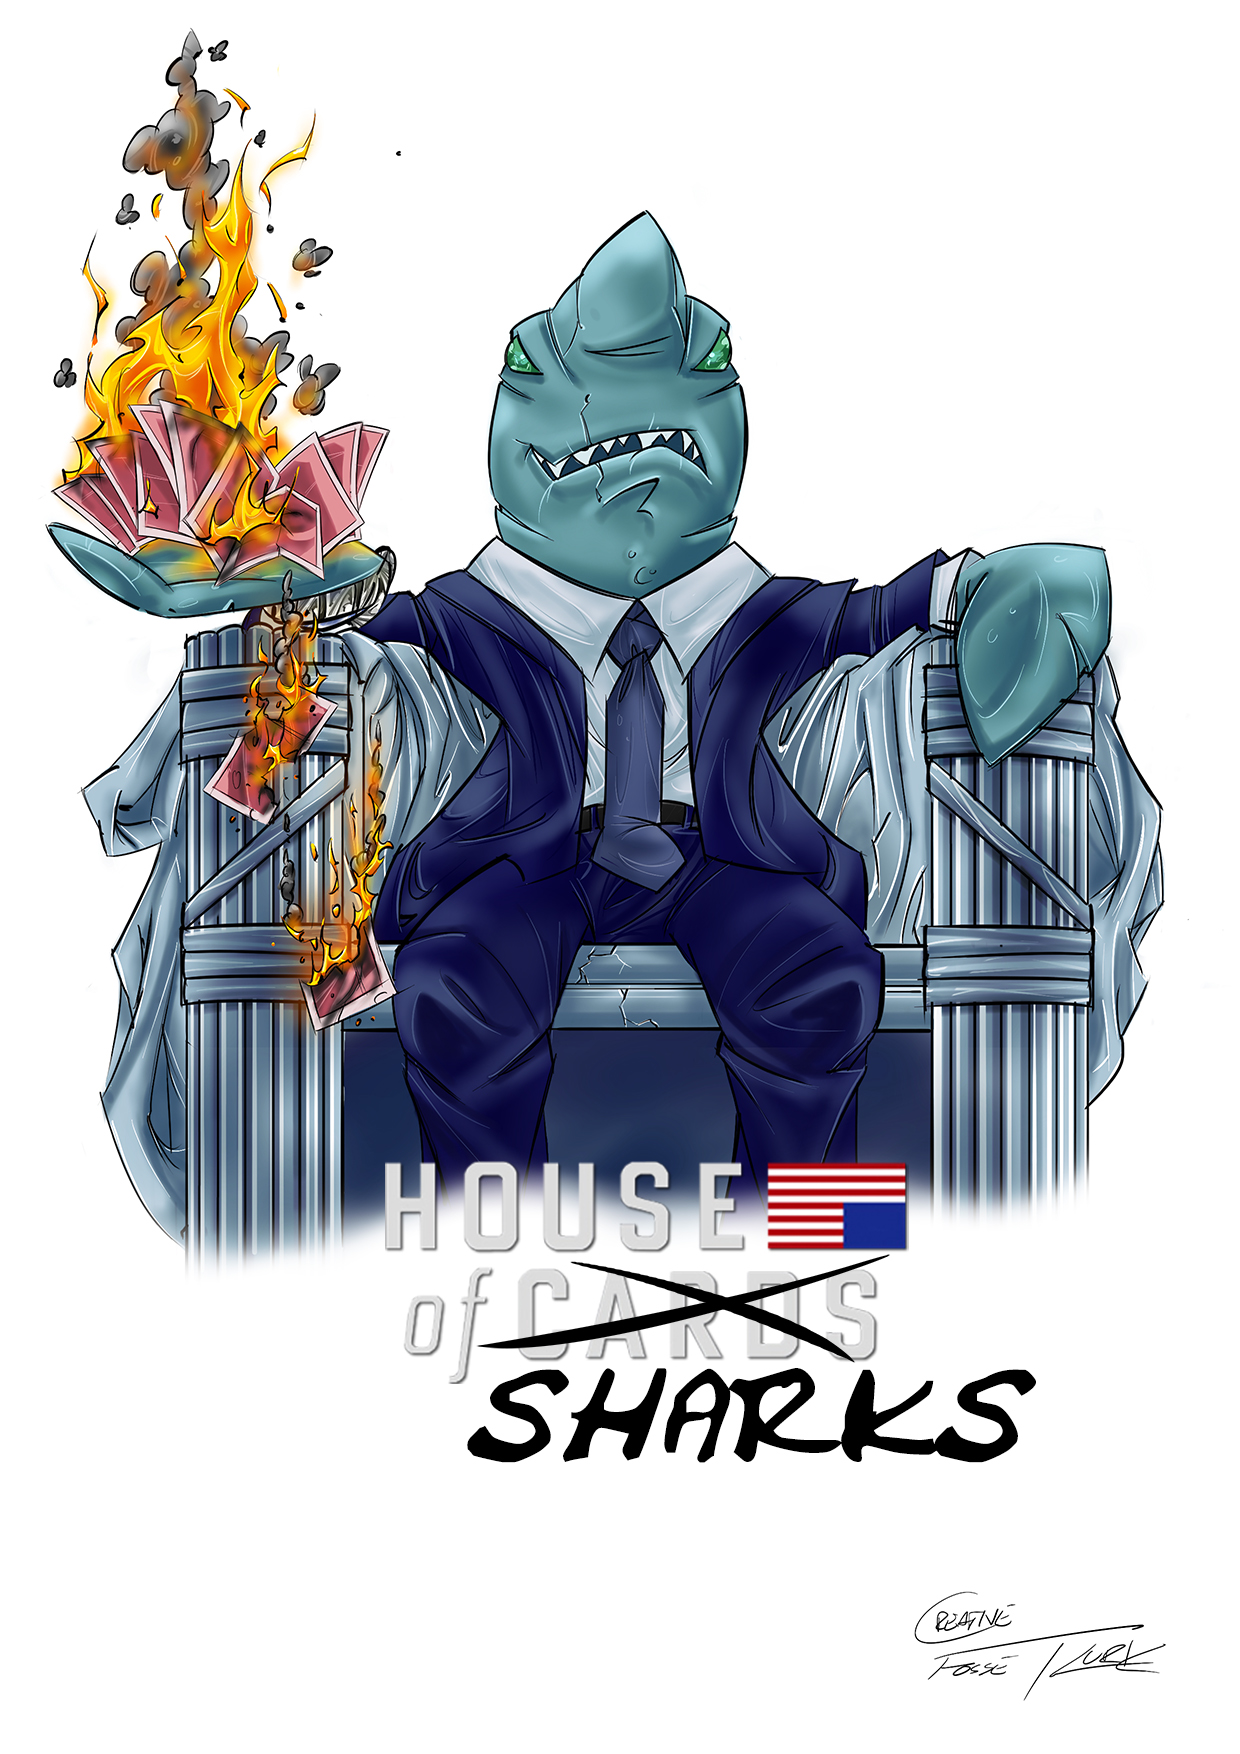 House of... SHARKS!